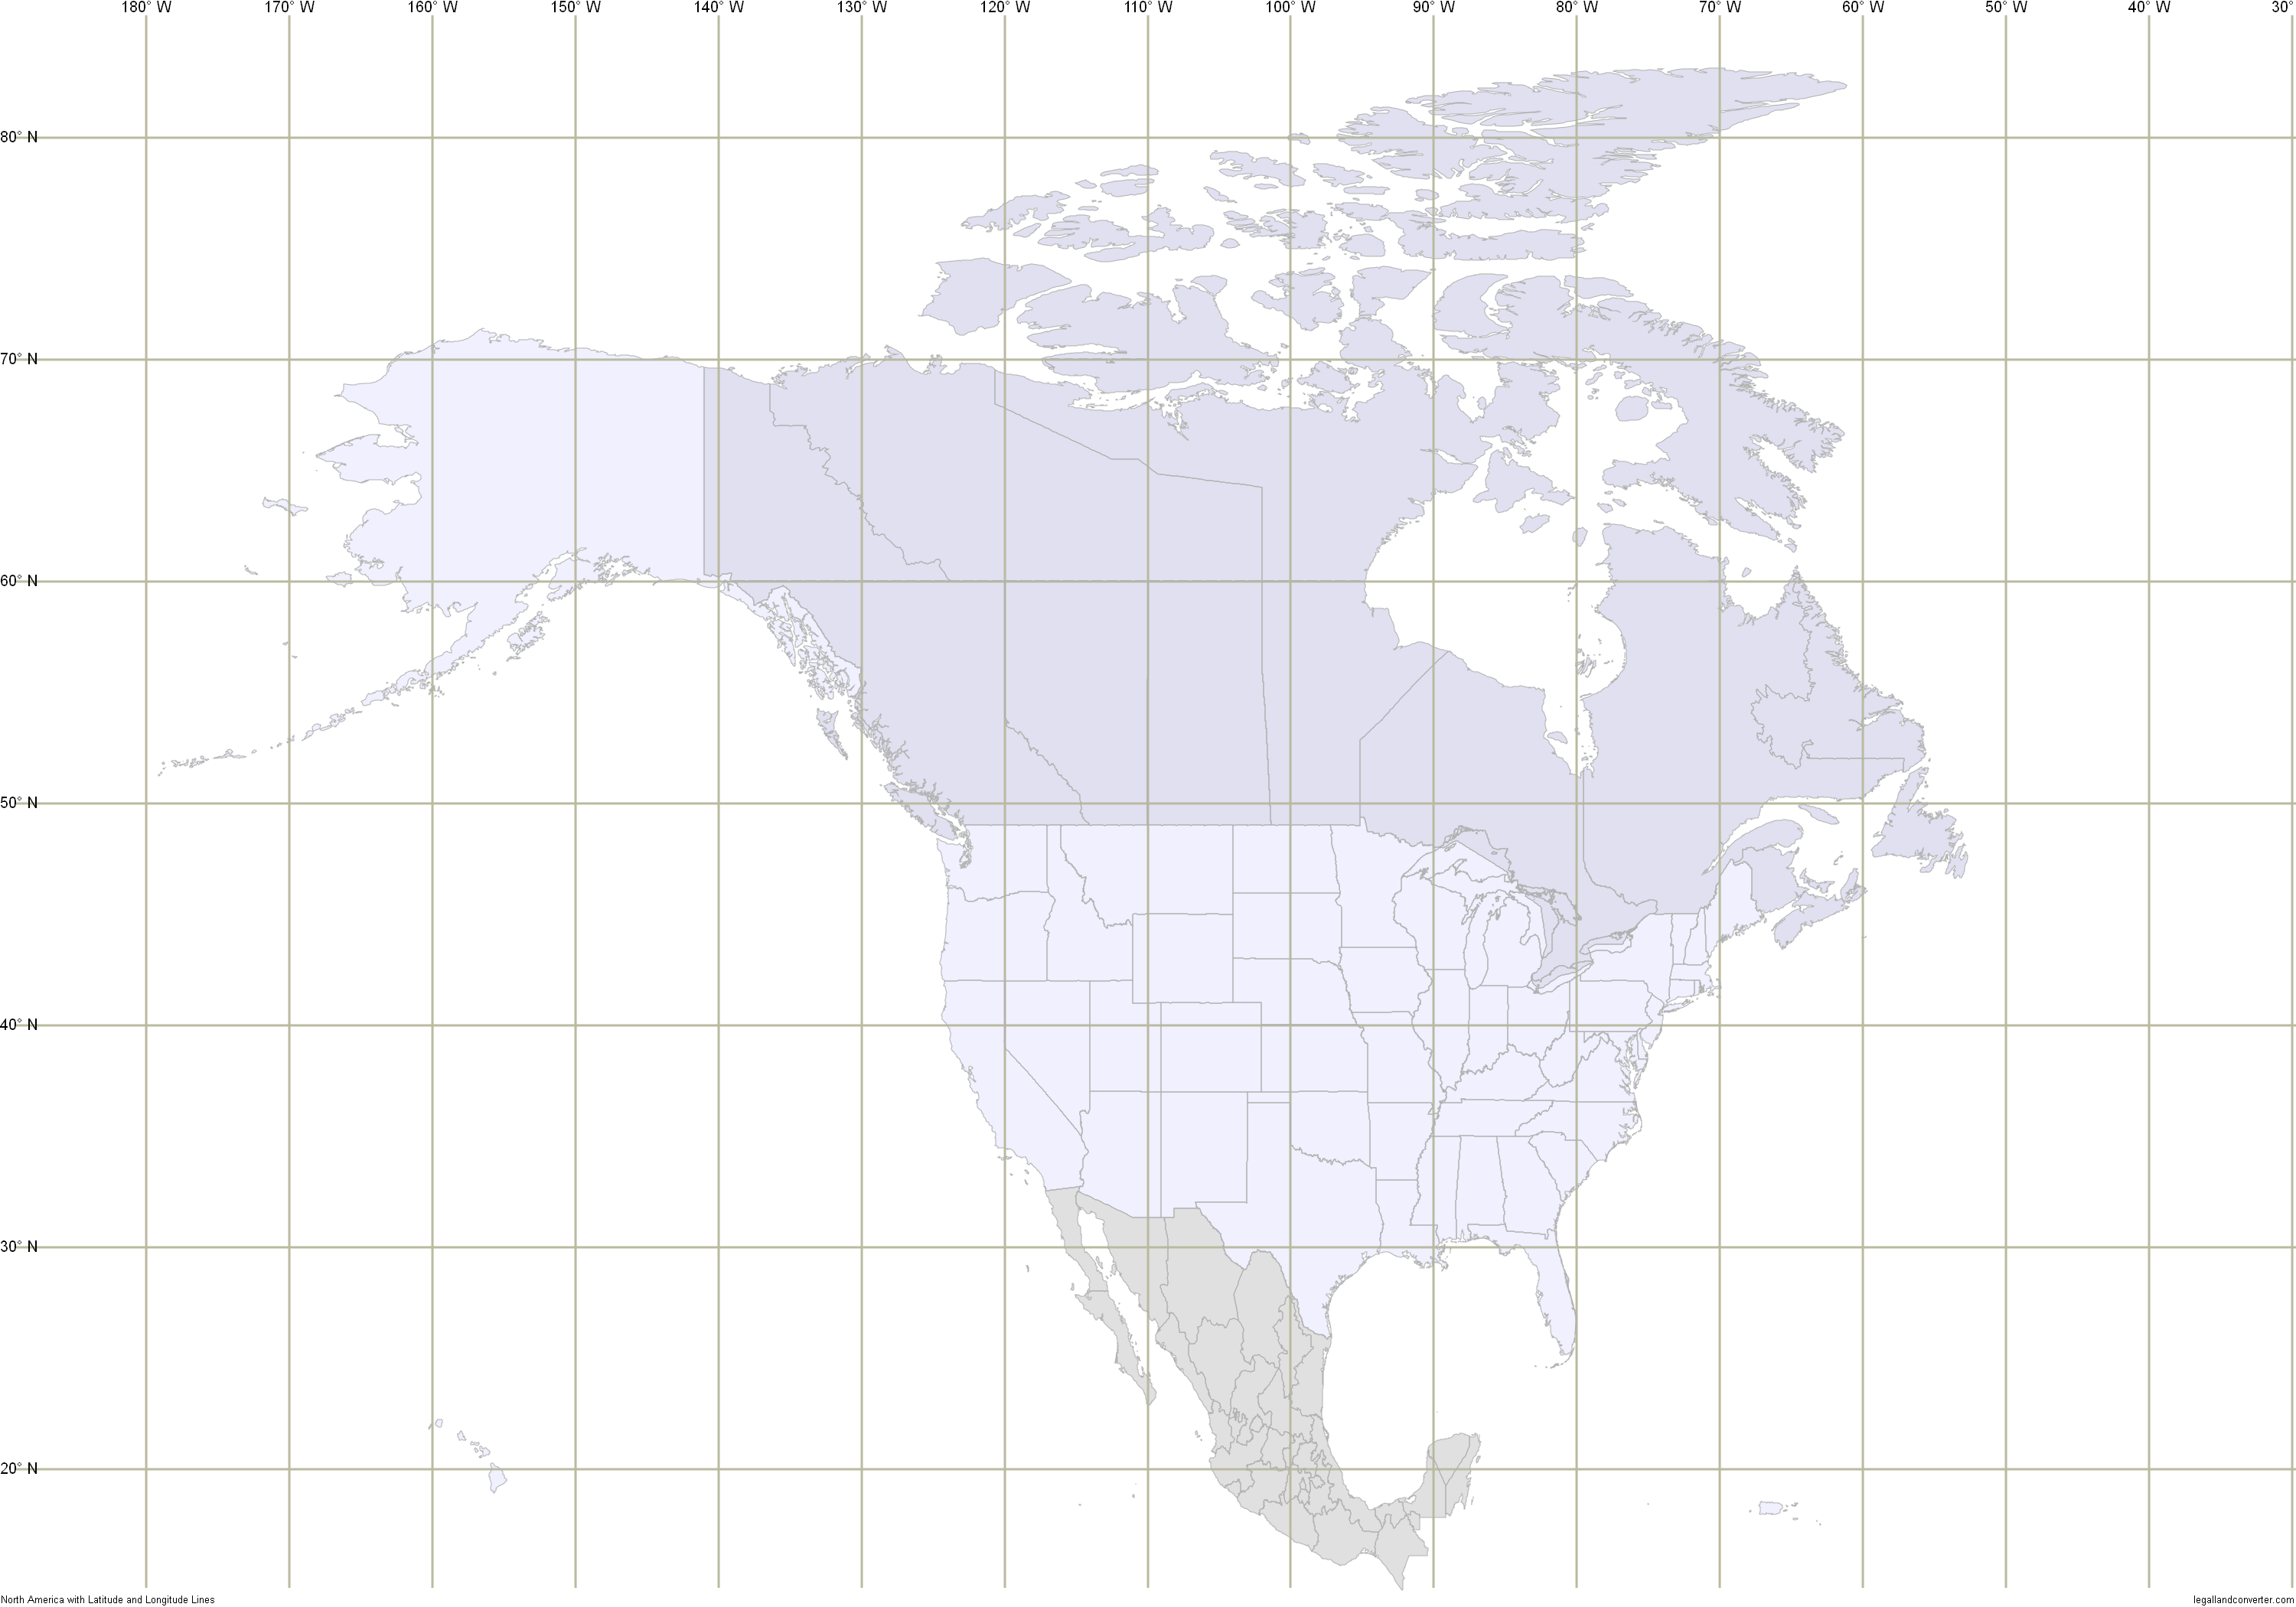 Map Of North America With Laude And Longitude Grid North America Outline Map With Laude